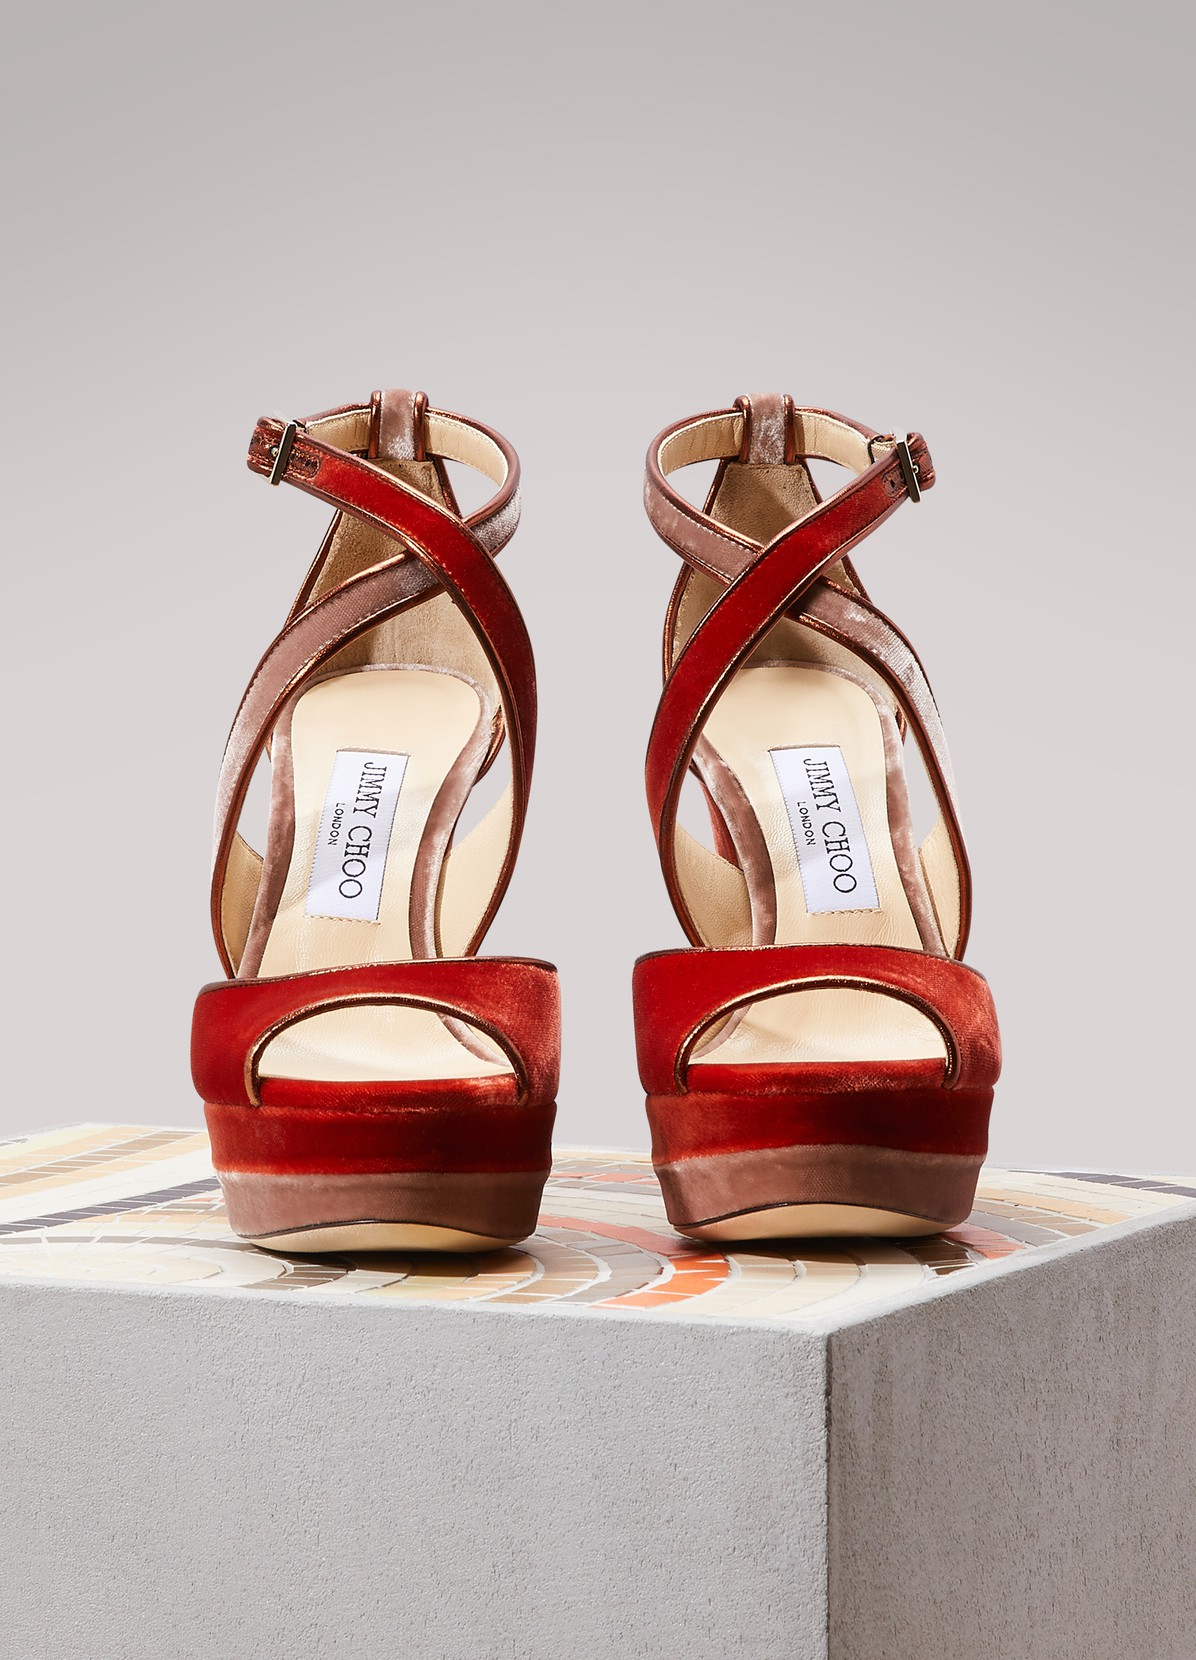 JIMMY CHOO Sandales en velour et cuir April 120